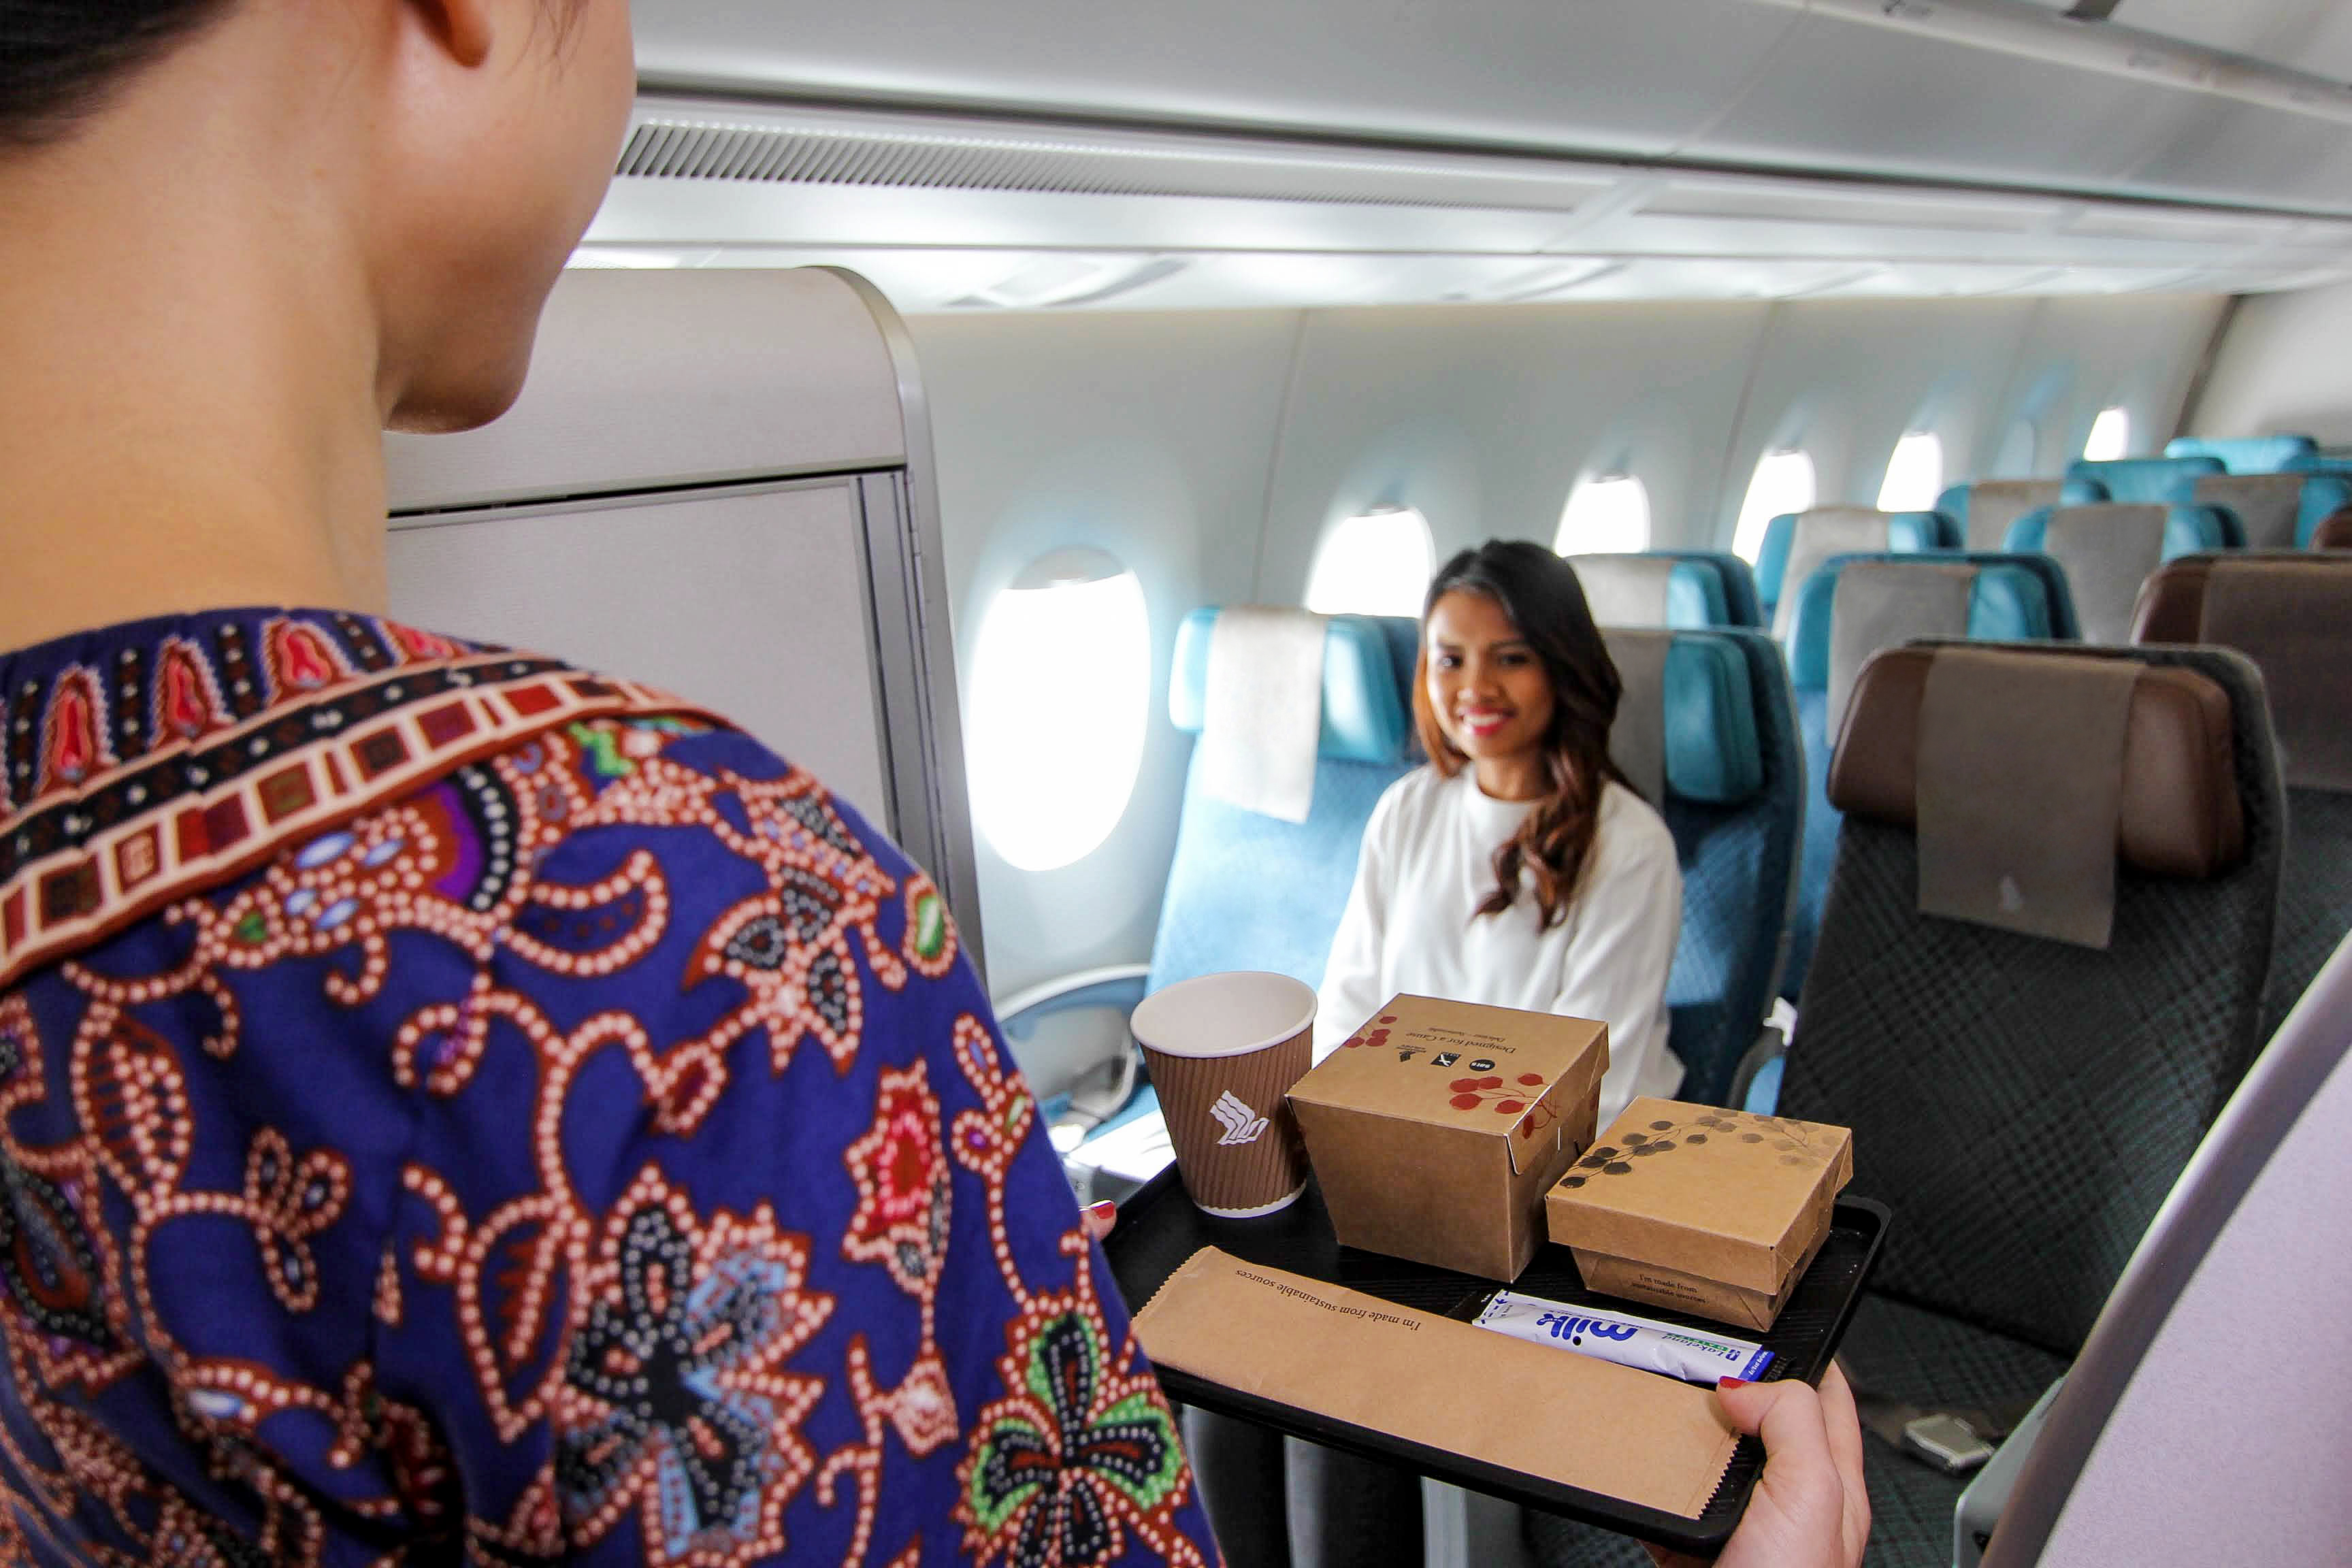 Singapore Airlines to offer wider range of main courses on short-haul flights under 3.5 hours. Photo courtesy: SIA